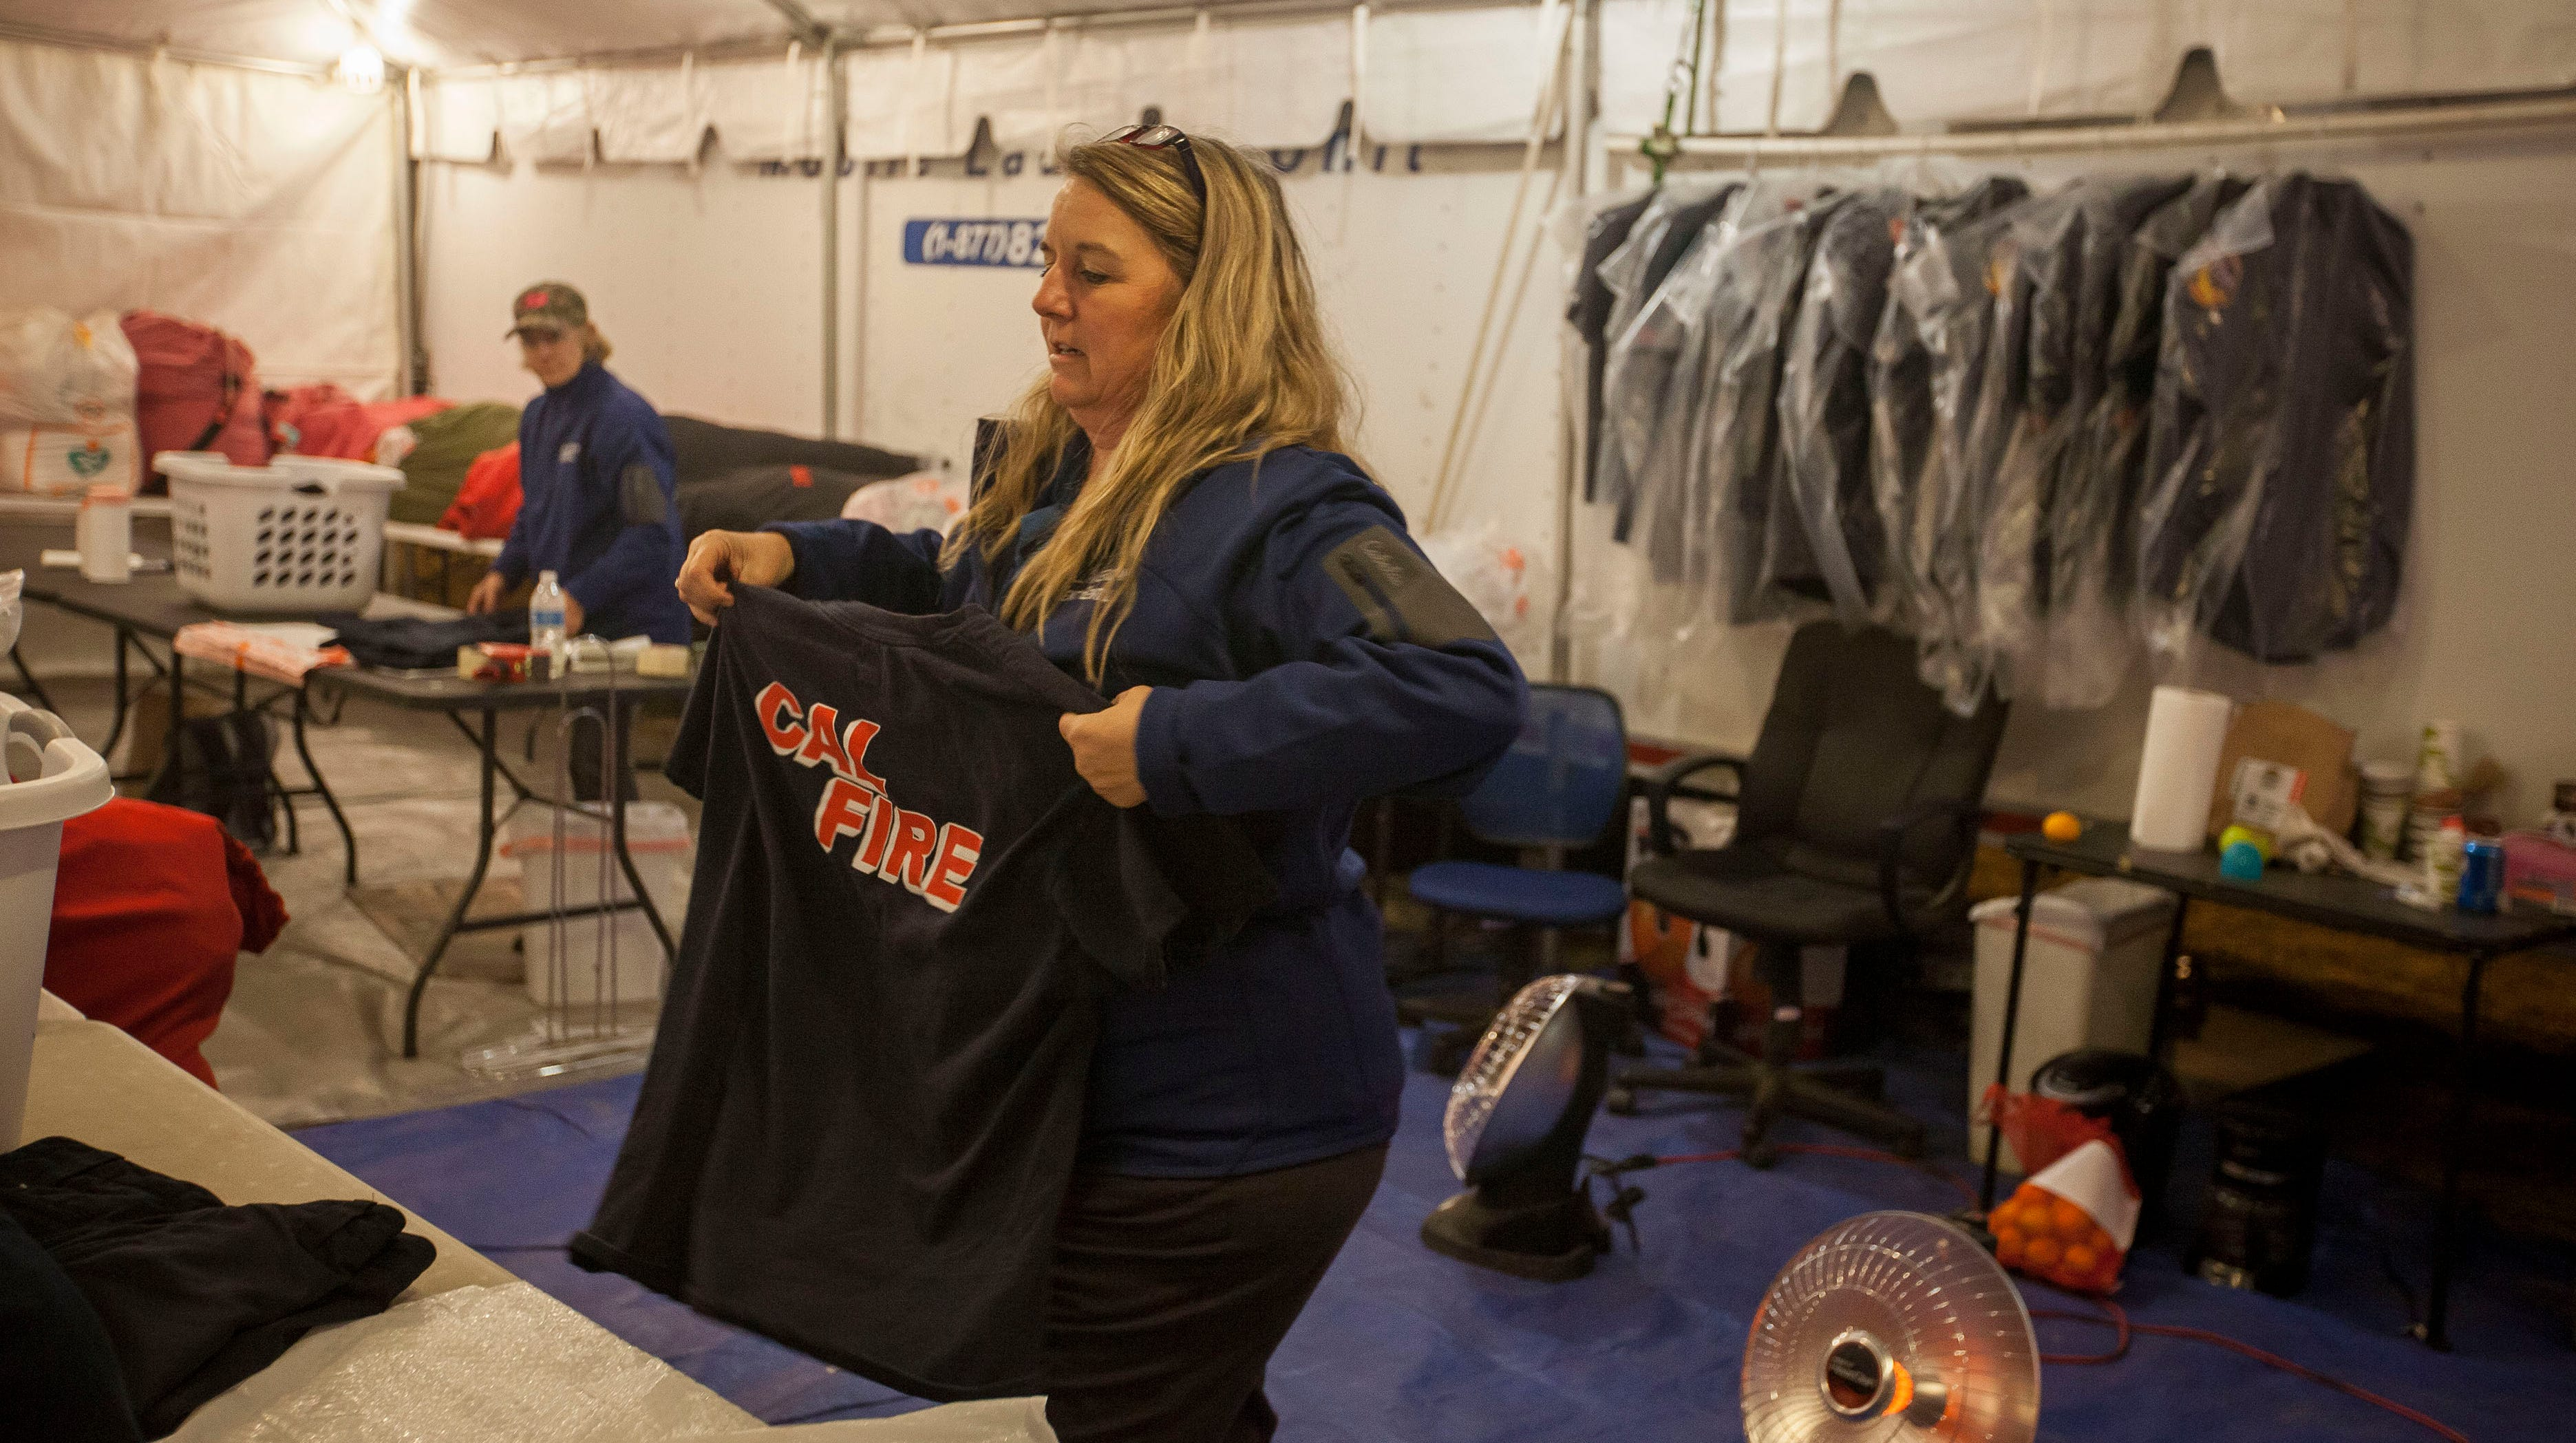 Kelly Daniels, an employee for All American Emergency Services folds shirts from the Cal Fire teams as she works in the laundry trailer that the company was hired to provide for the officials working at the incident command center for the Camp Fire at the Butte County Fairgrounds.(Kelly Jordan)